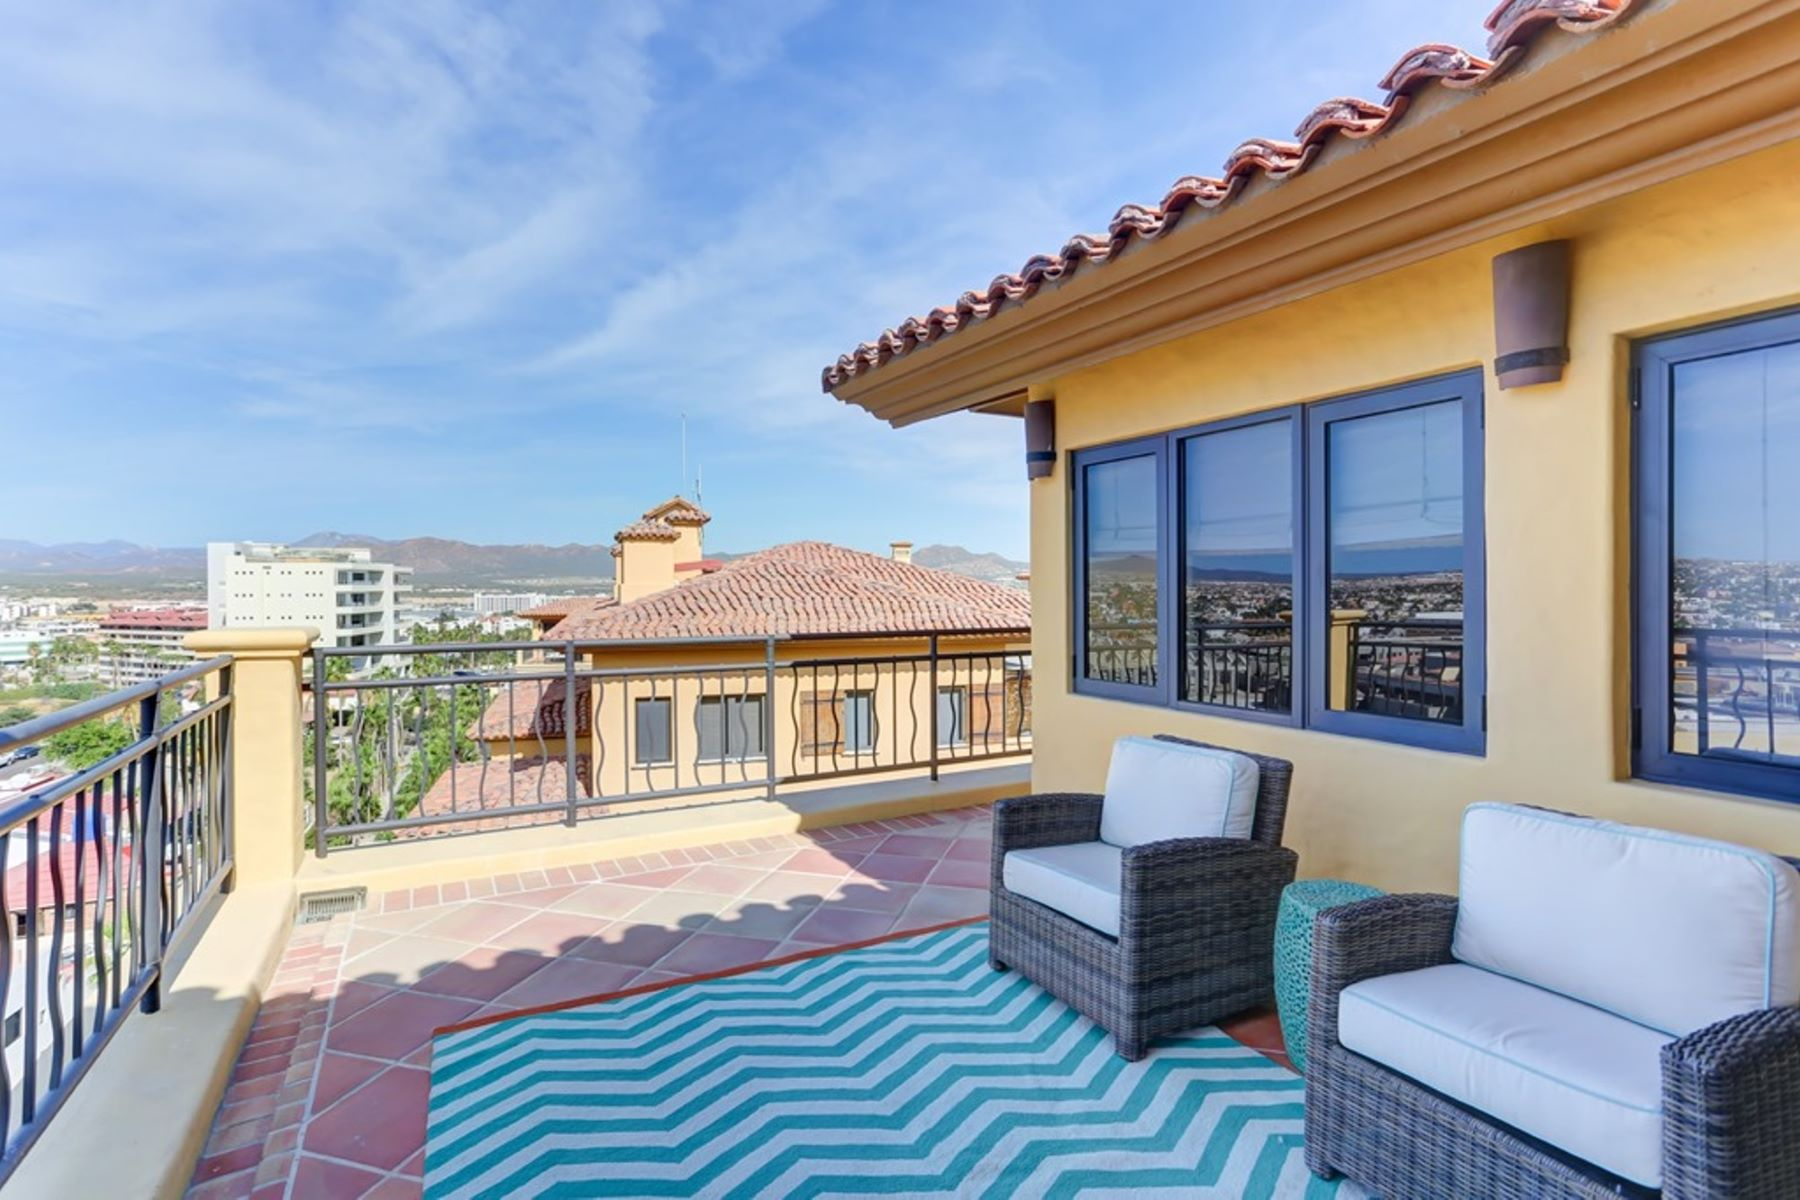 Condominium for Sale at Hacienda penthouse 4-601 Cabo San Lucas, Mexico